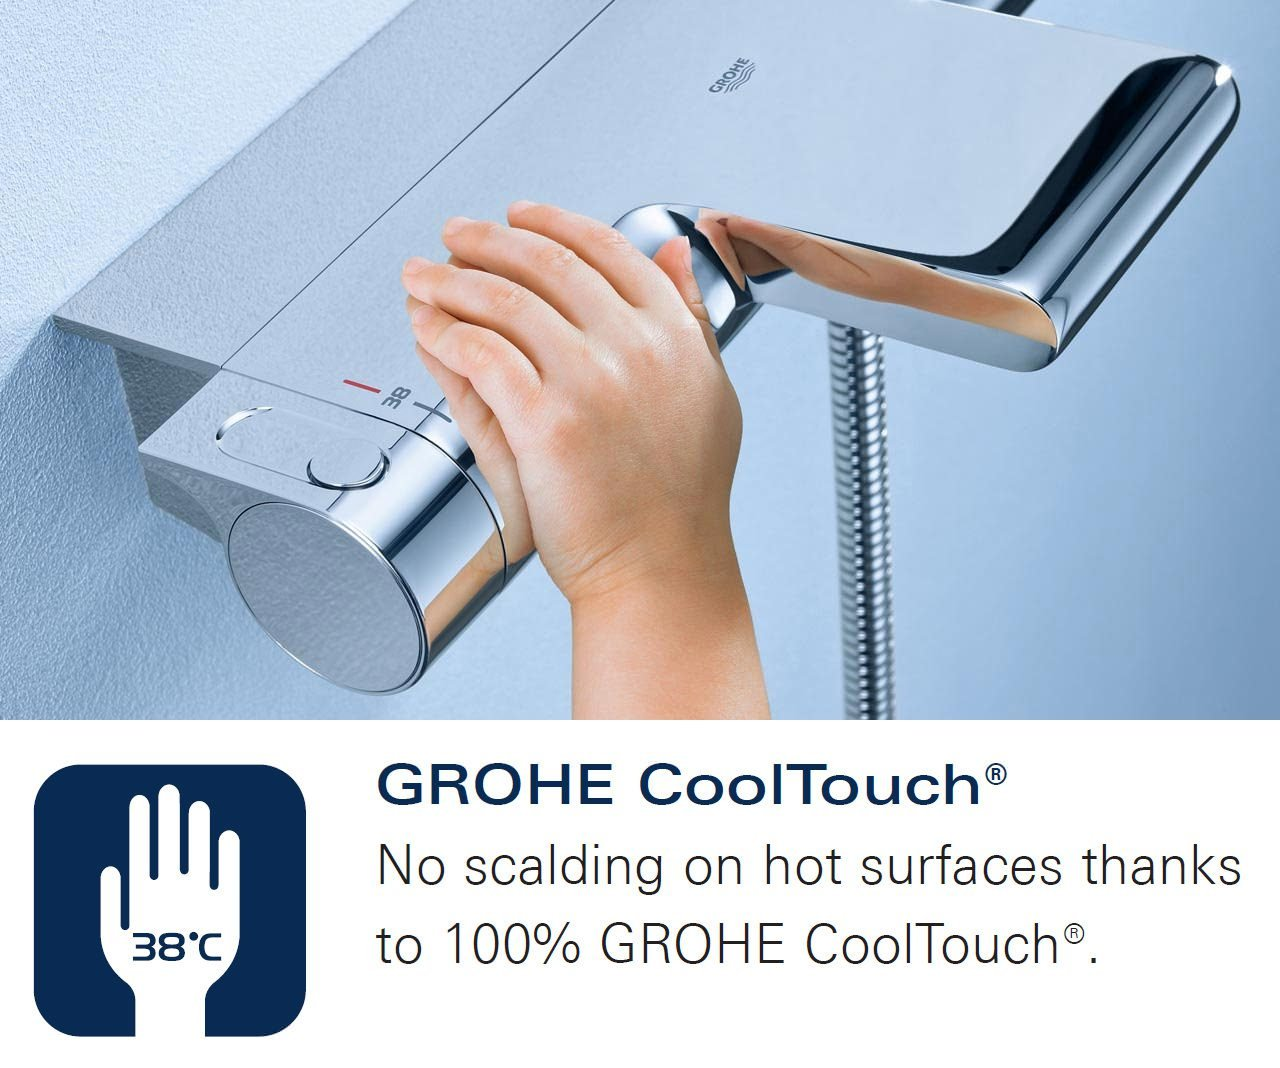 Grohe Grohtherm 1000 New.Grohe Grohtherm 1000 New Thermostatic Shower Mixer Valve With Kit